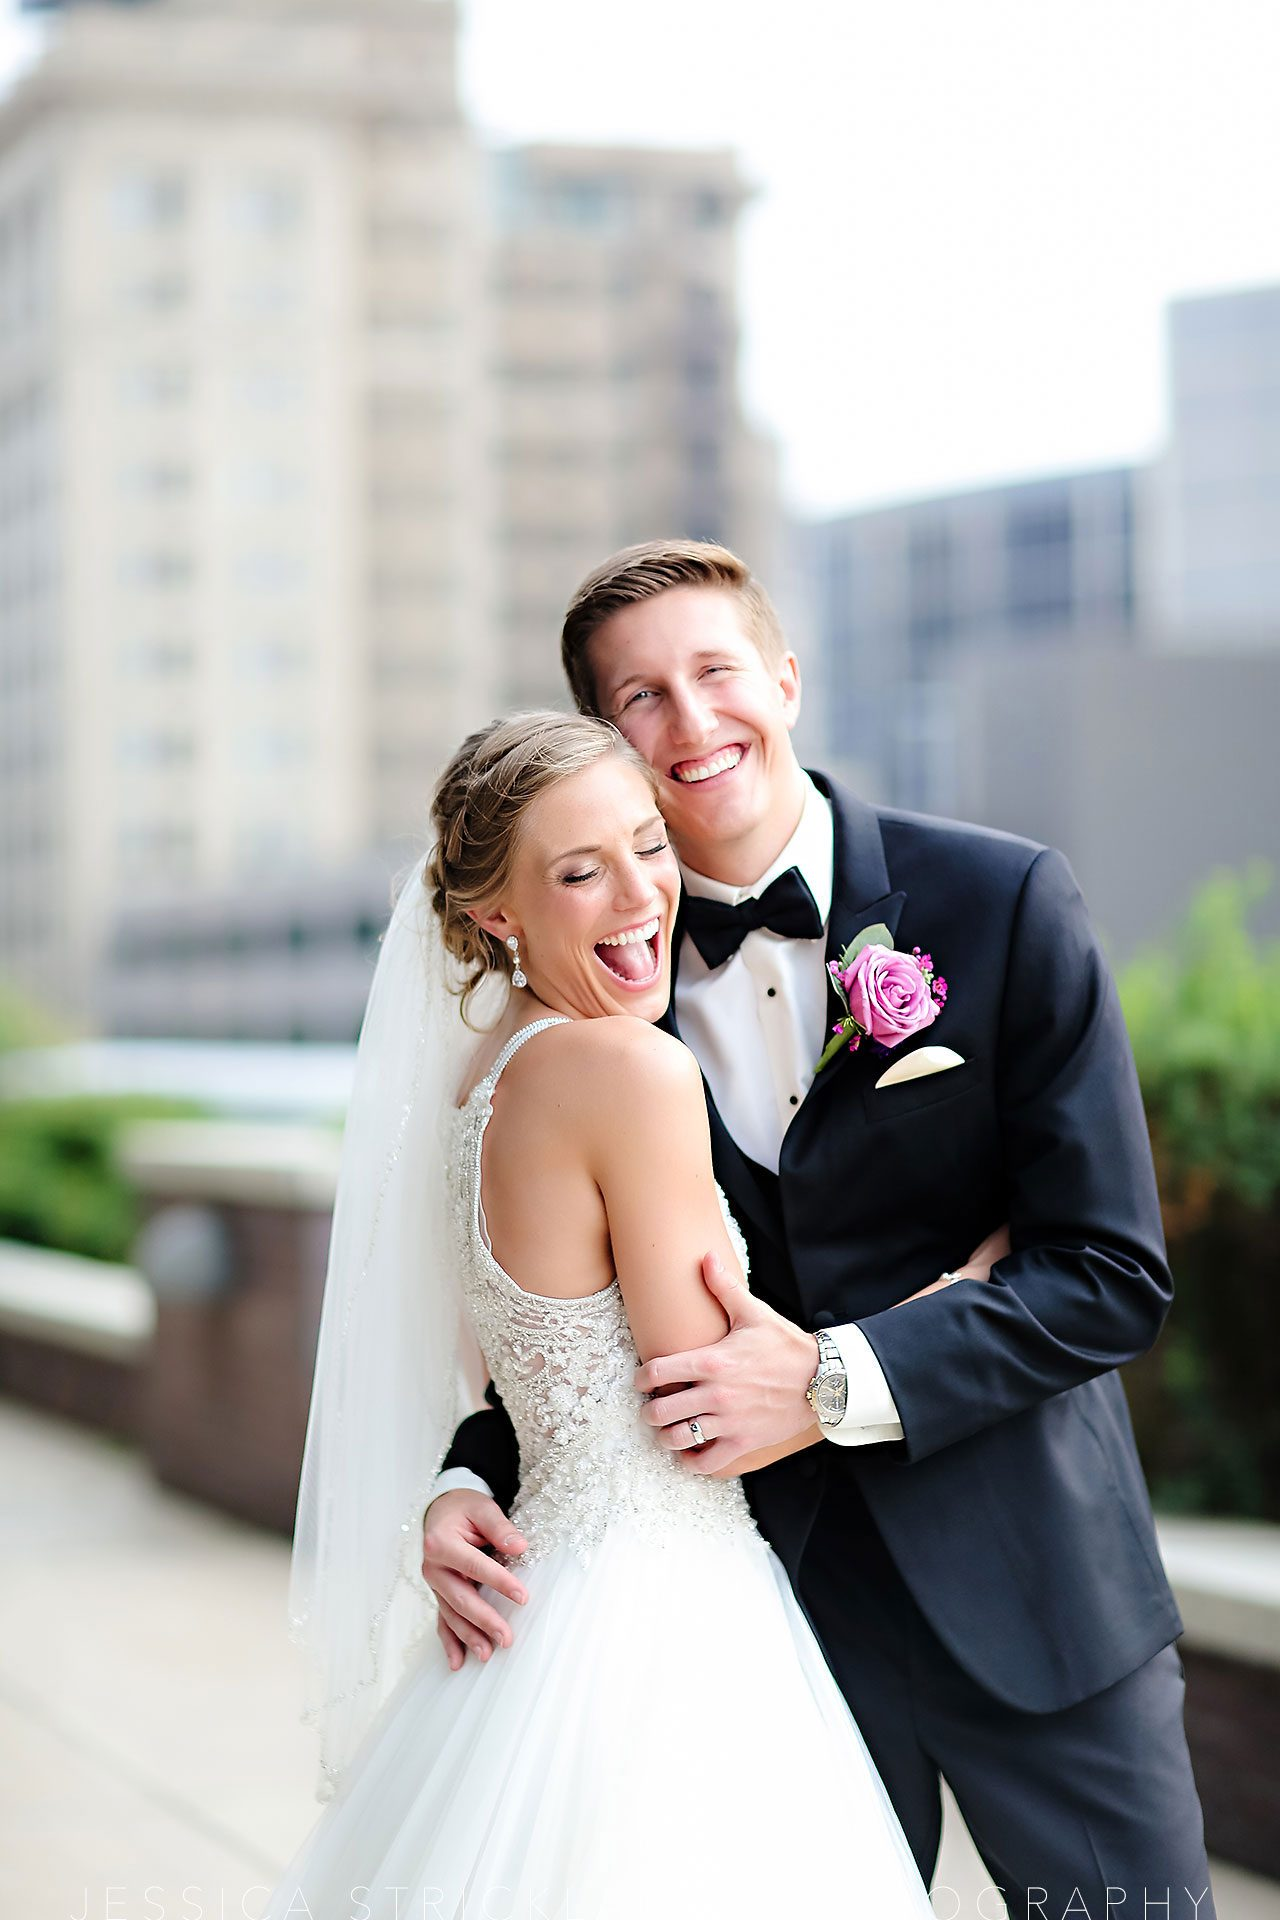 Serra Alex Regions Tower Indianapolis Wedding 227 watermarked